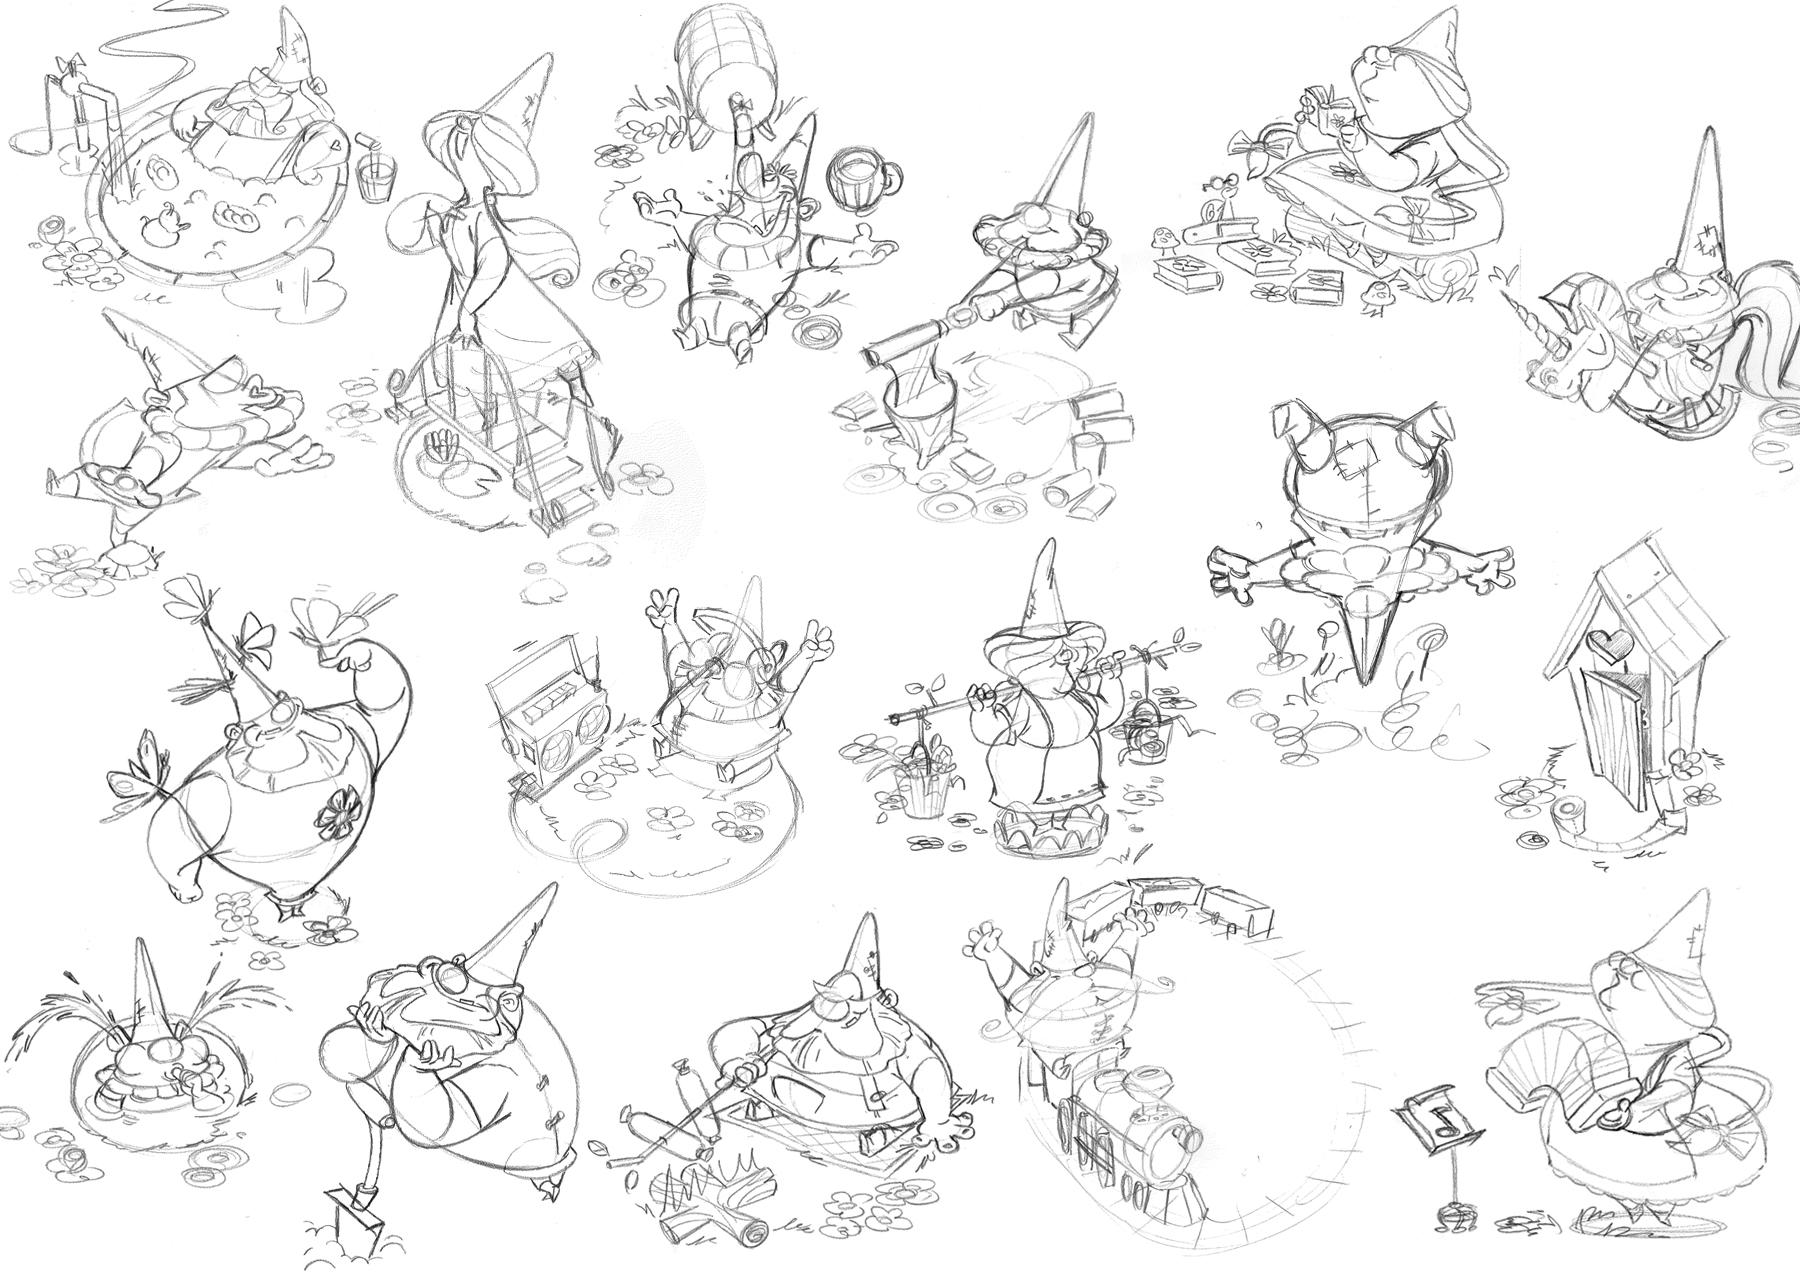 Even more ideas for the final gnome statues.